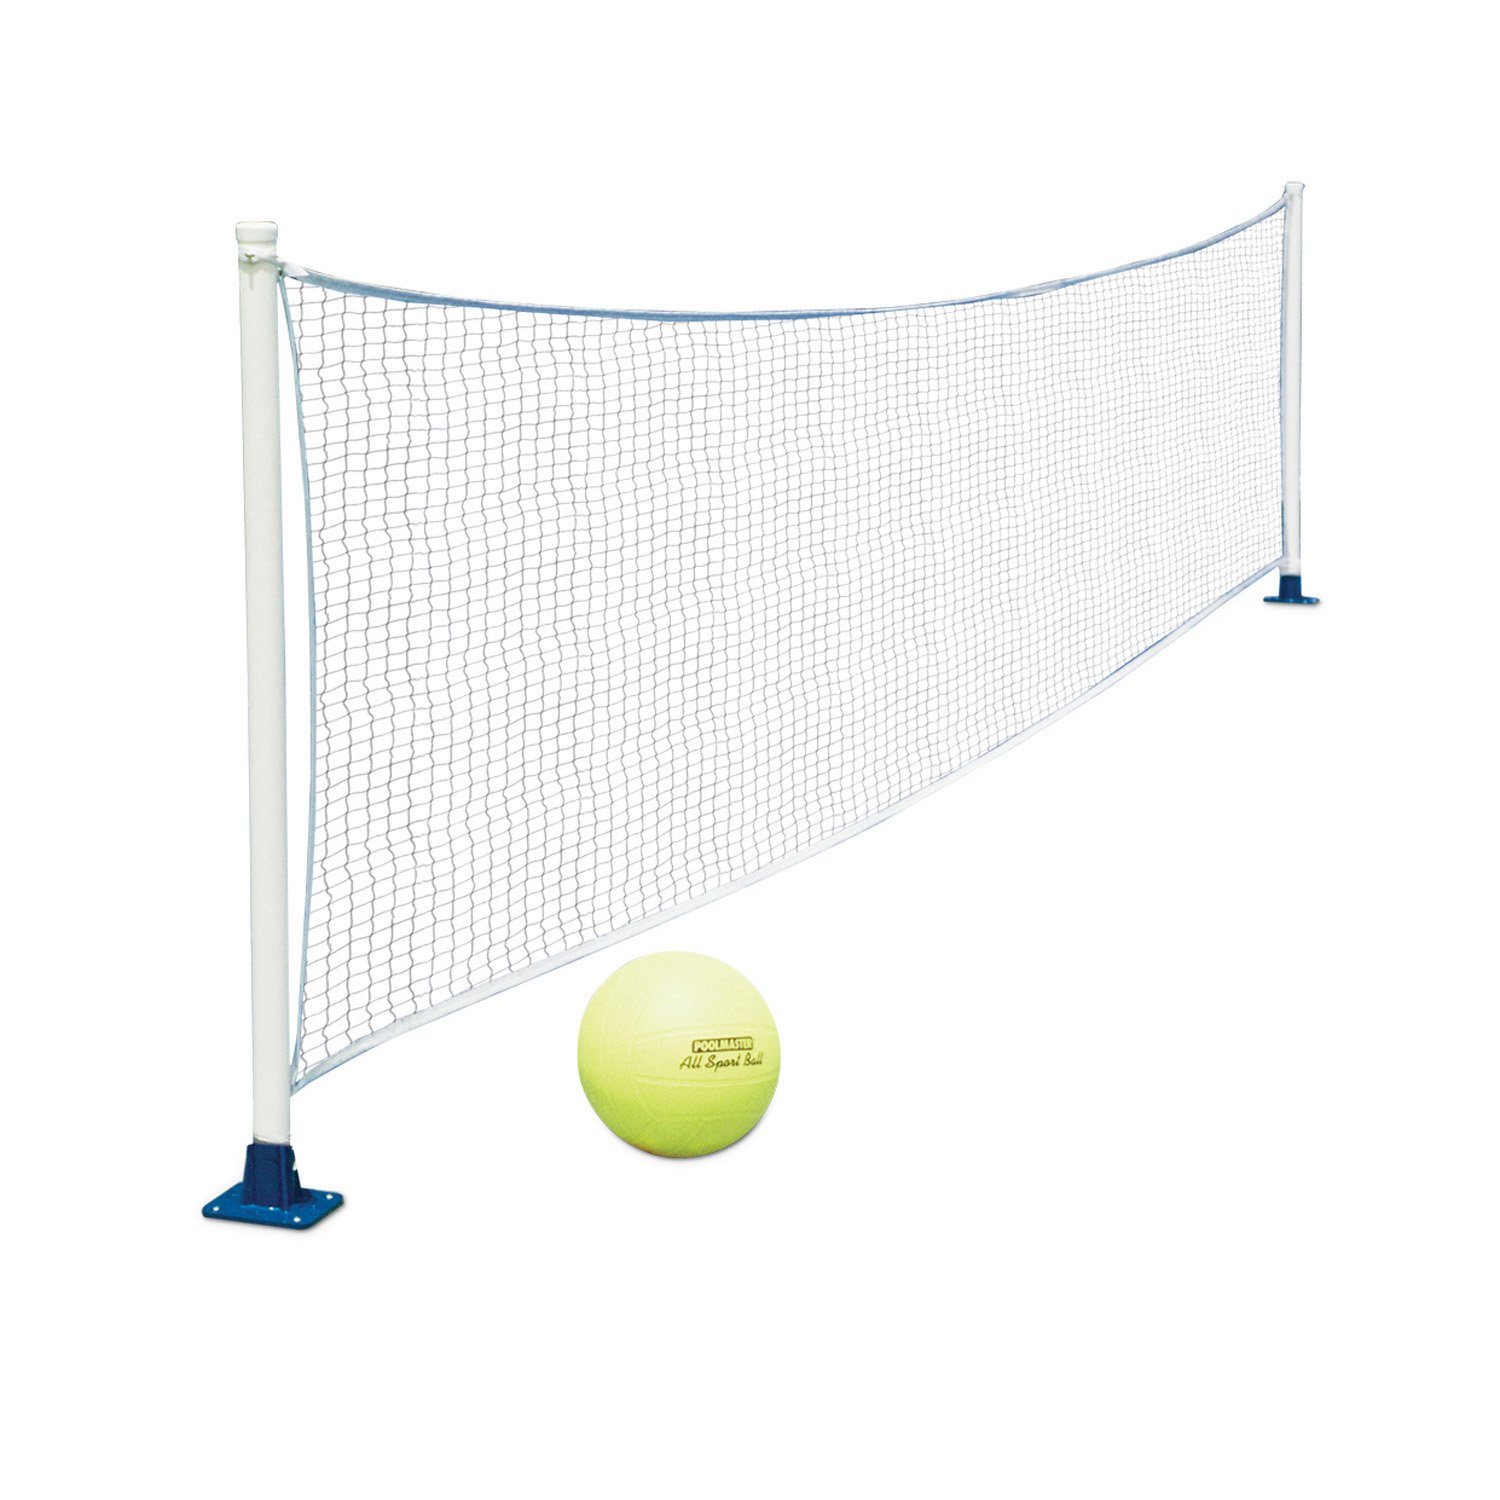 Poolmaster 72776 Above-Ground Mounted Poolside Volleyball / Badminton Game with Perma-Top Mounts by Poolmaster